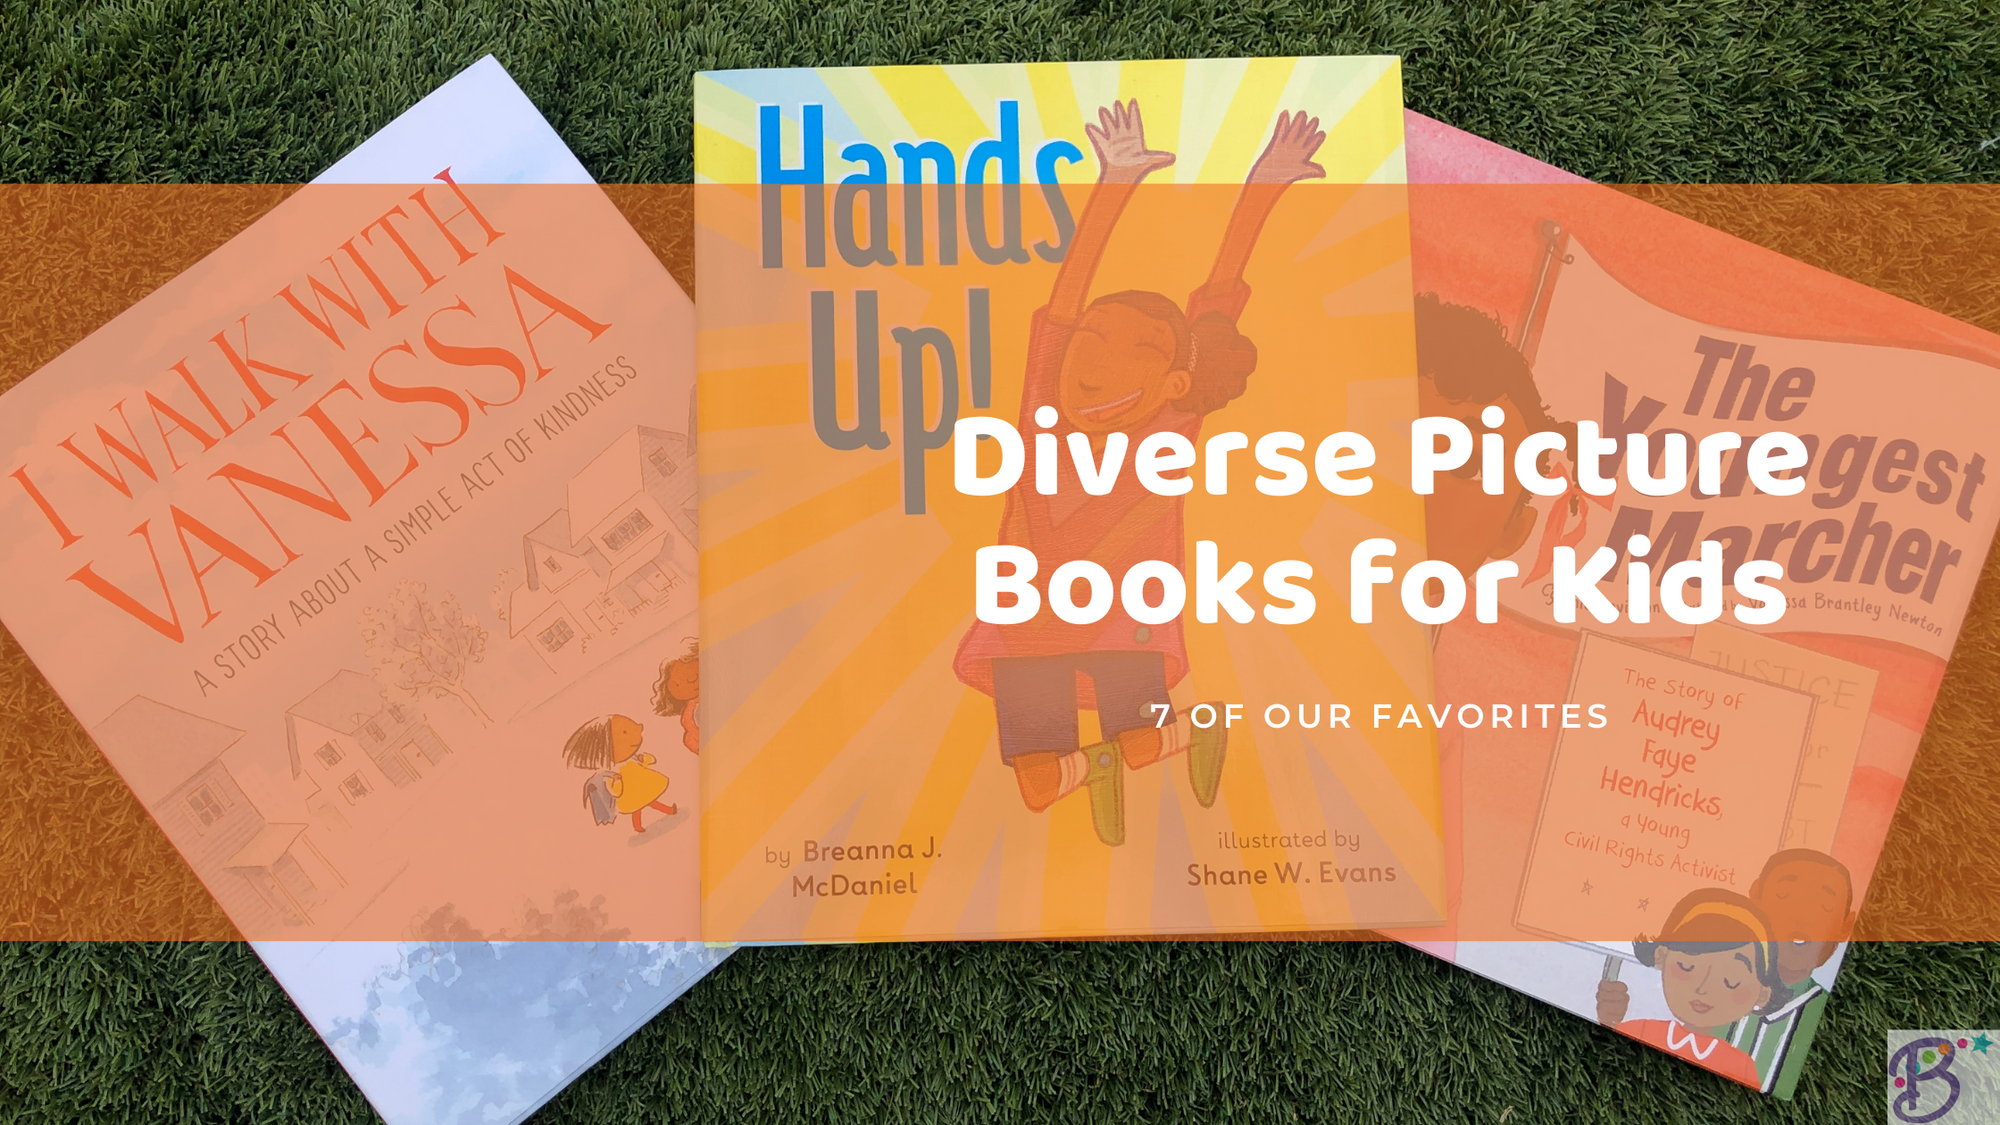 Diverse Picture Books for Kids, I Walk With Vanessa, Hands Up! picture book, The Youngest Marcher